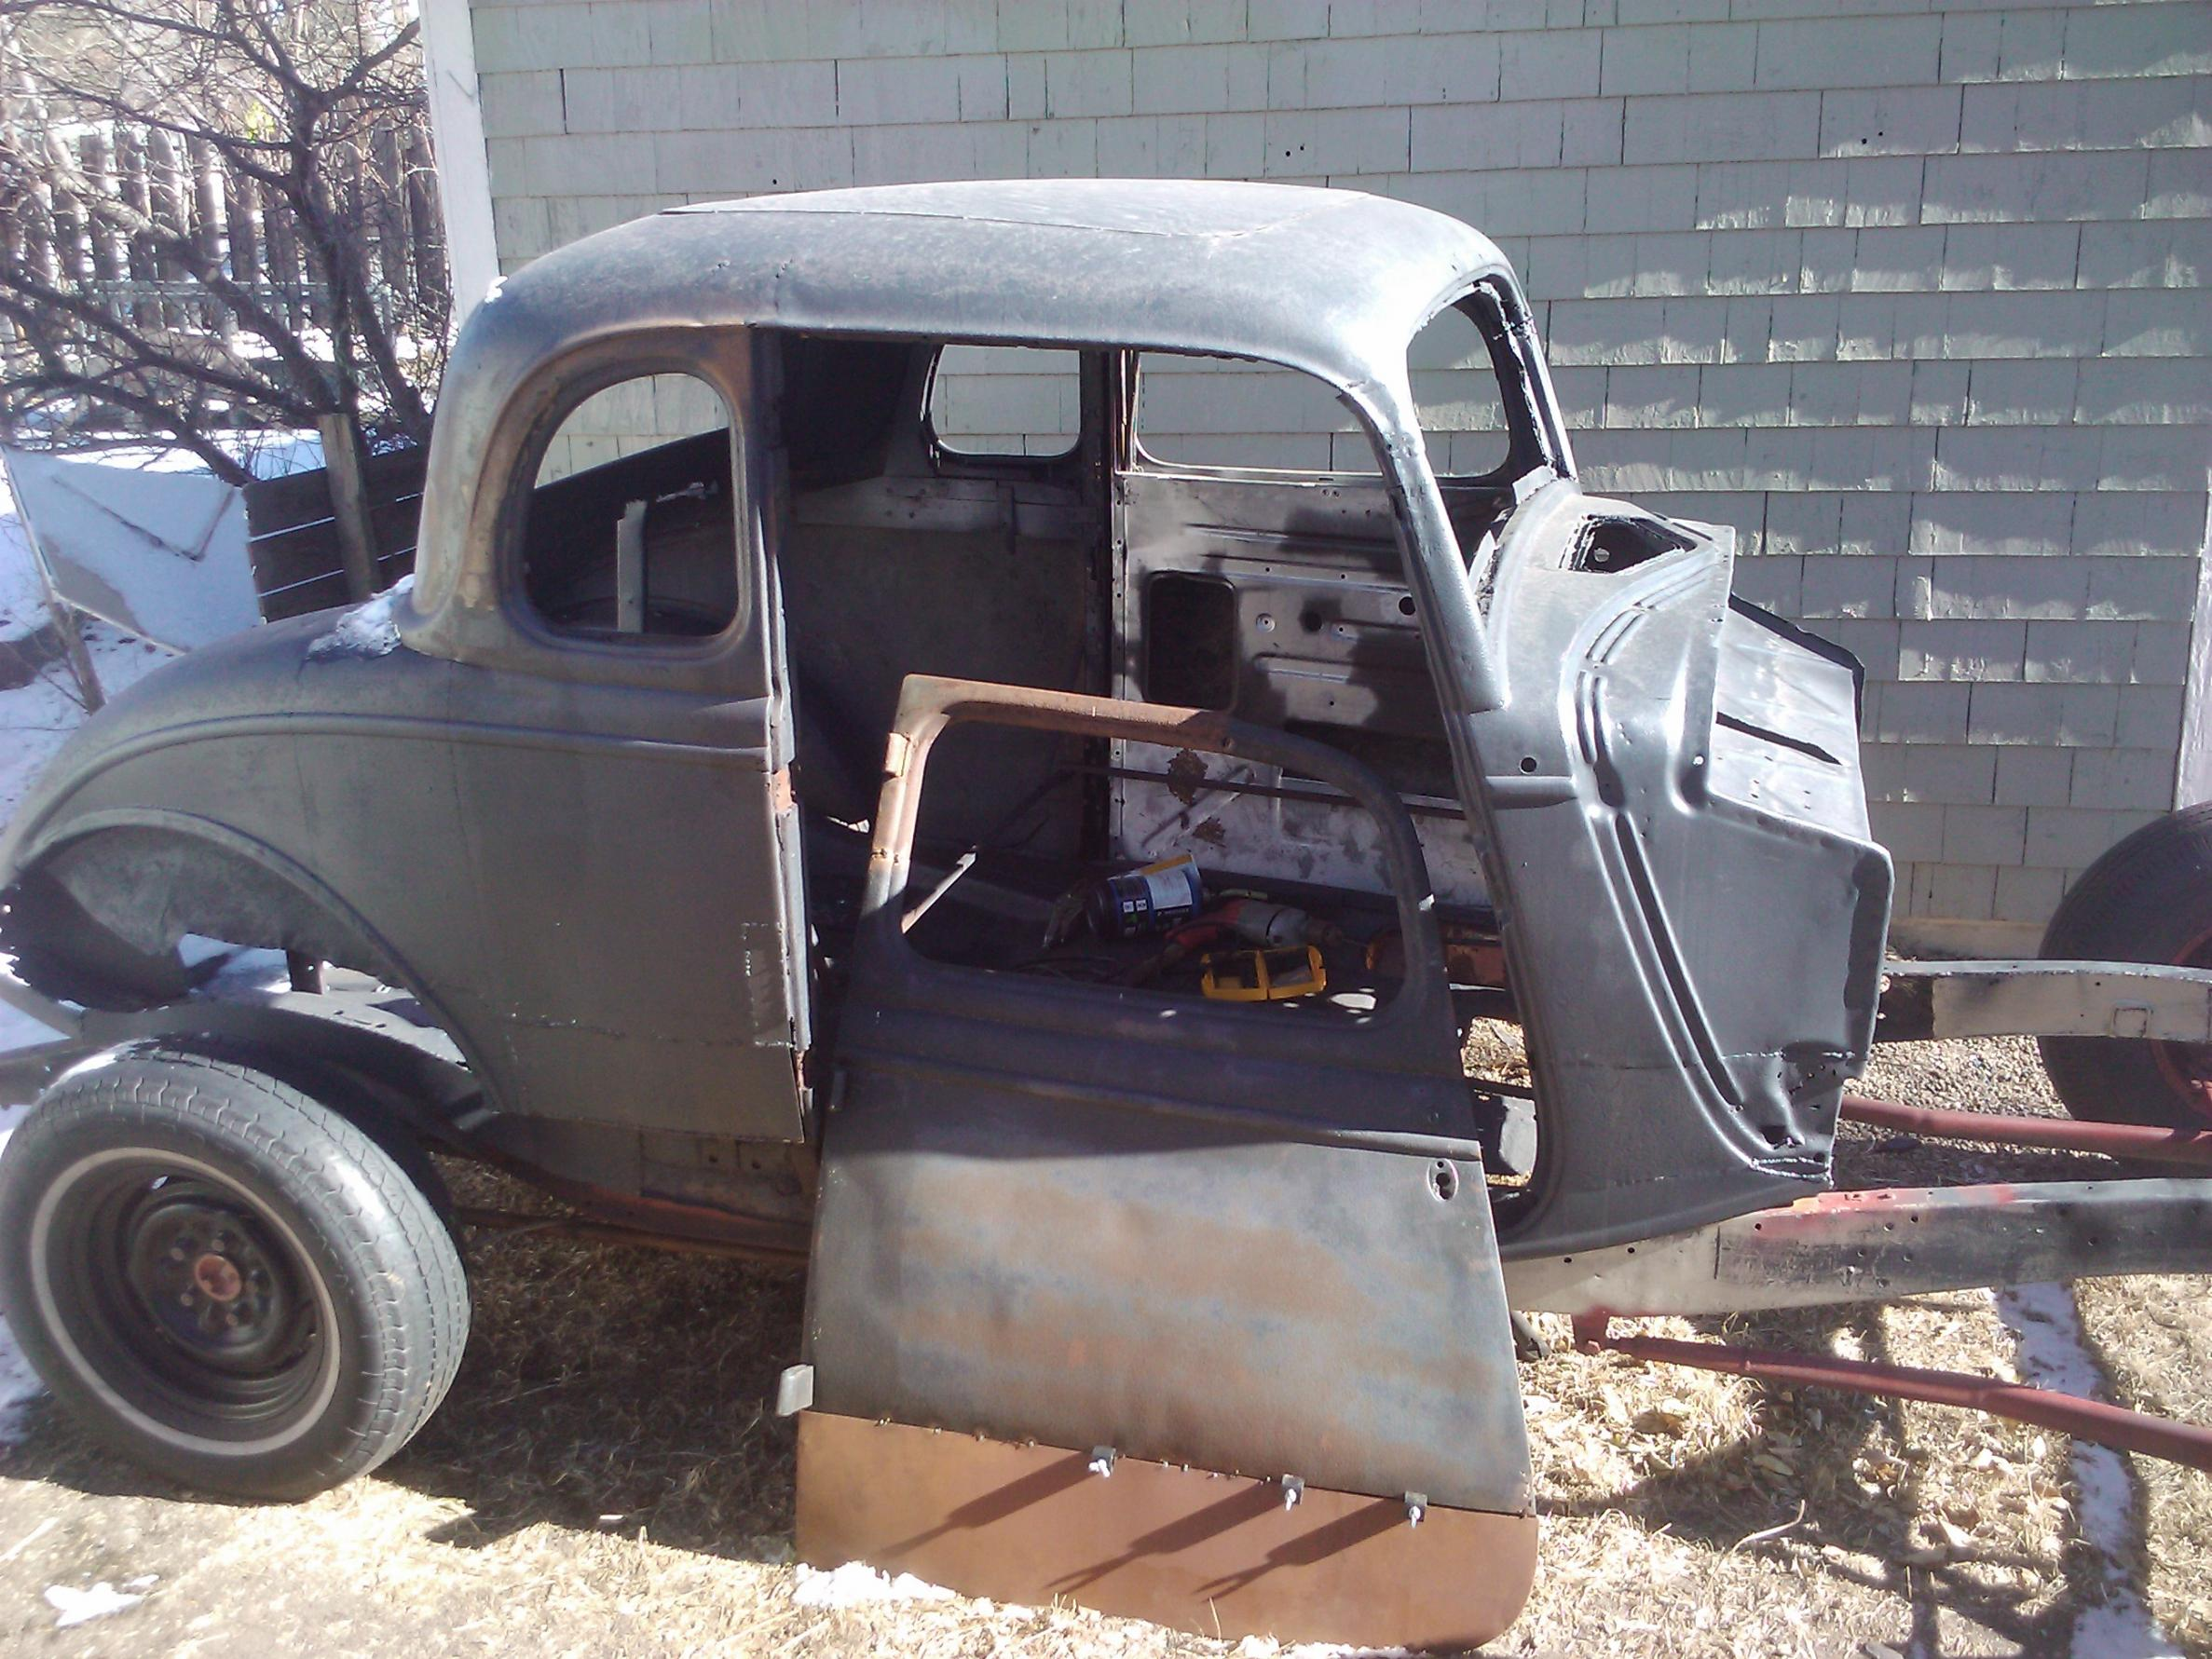 New Build... 33 34 Ford 5 window Coupe. 1933 1934 | The H.A.M.B.